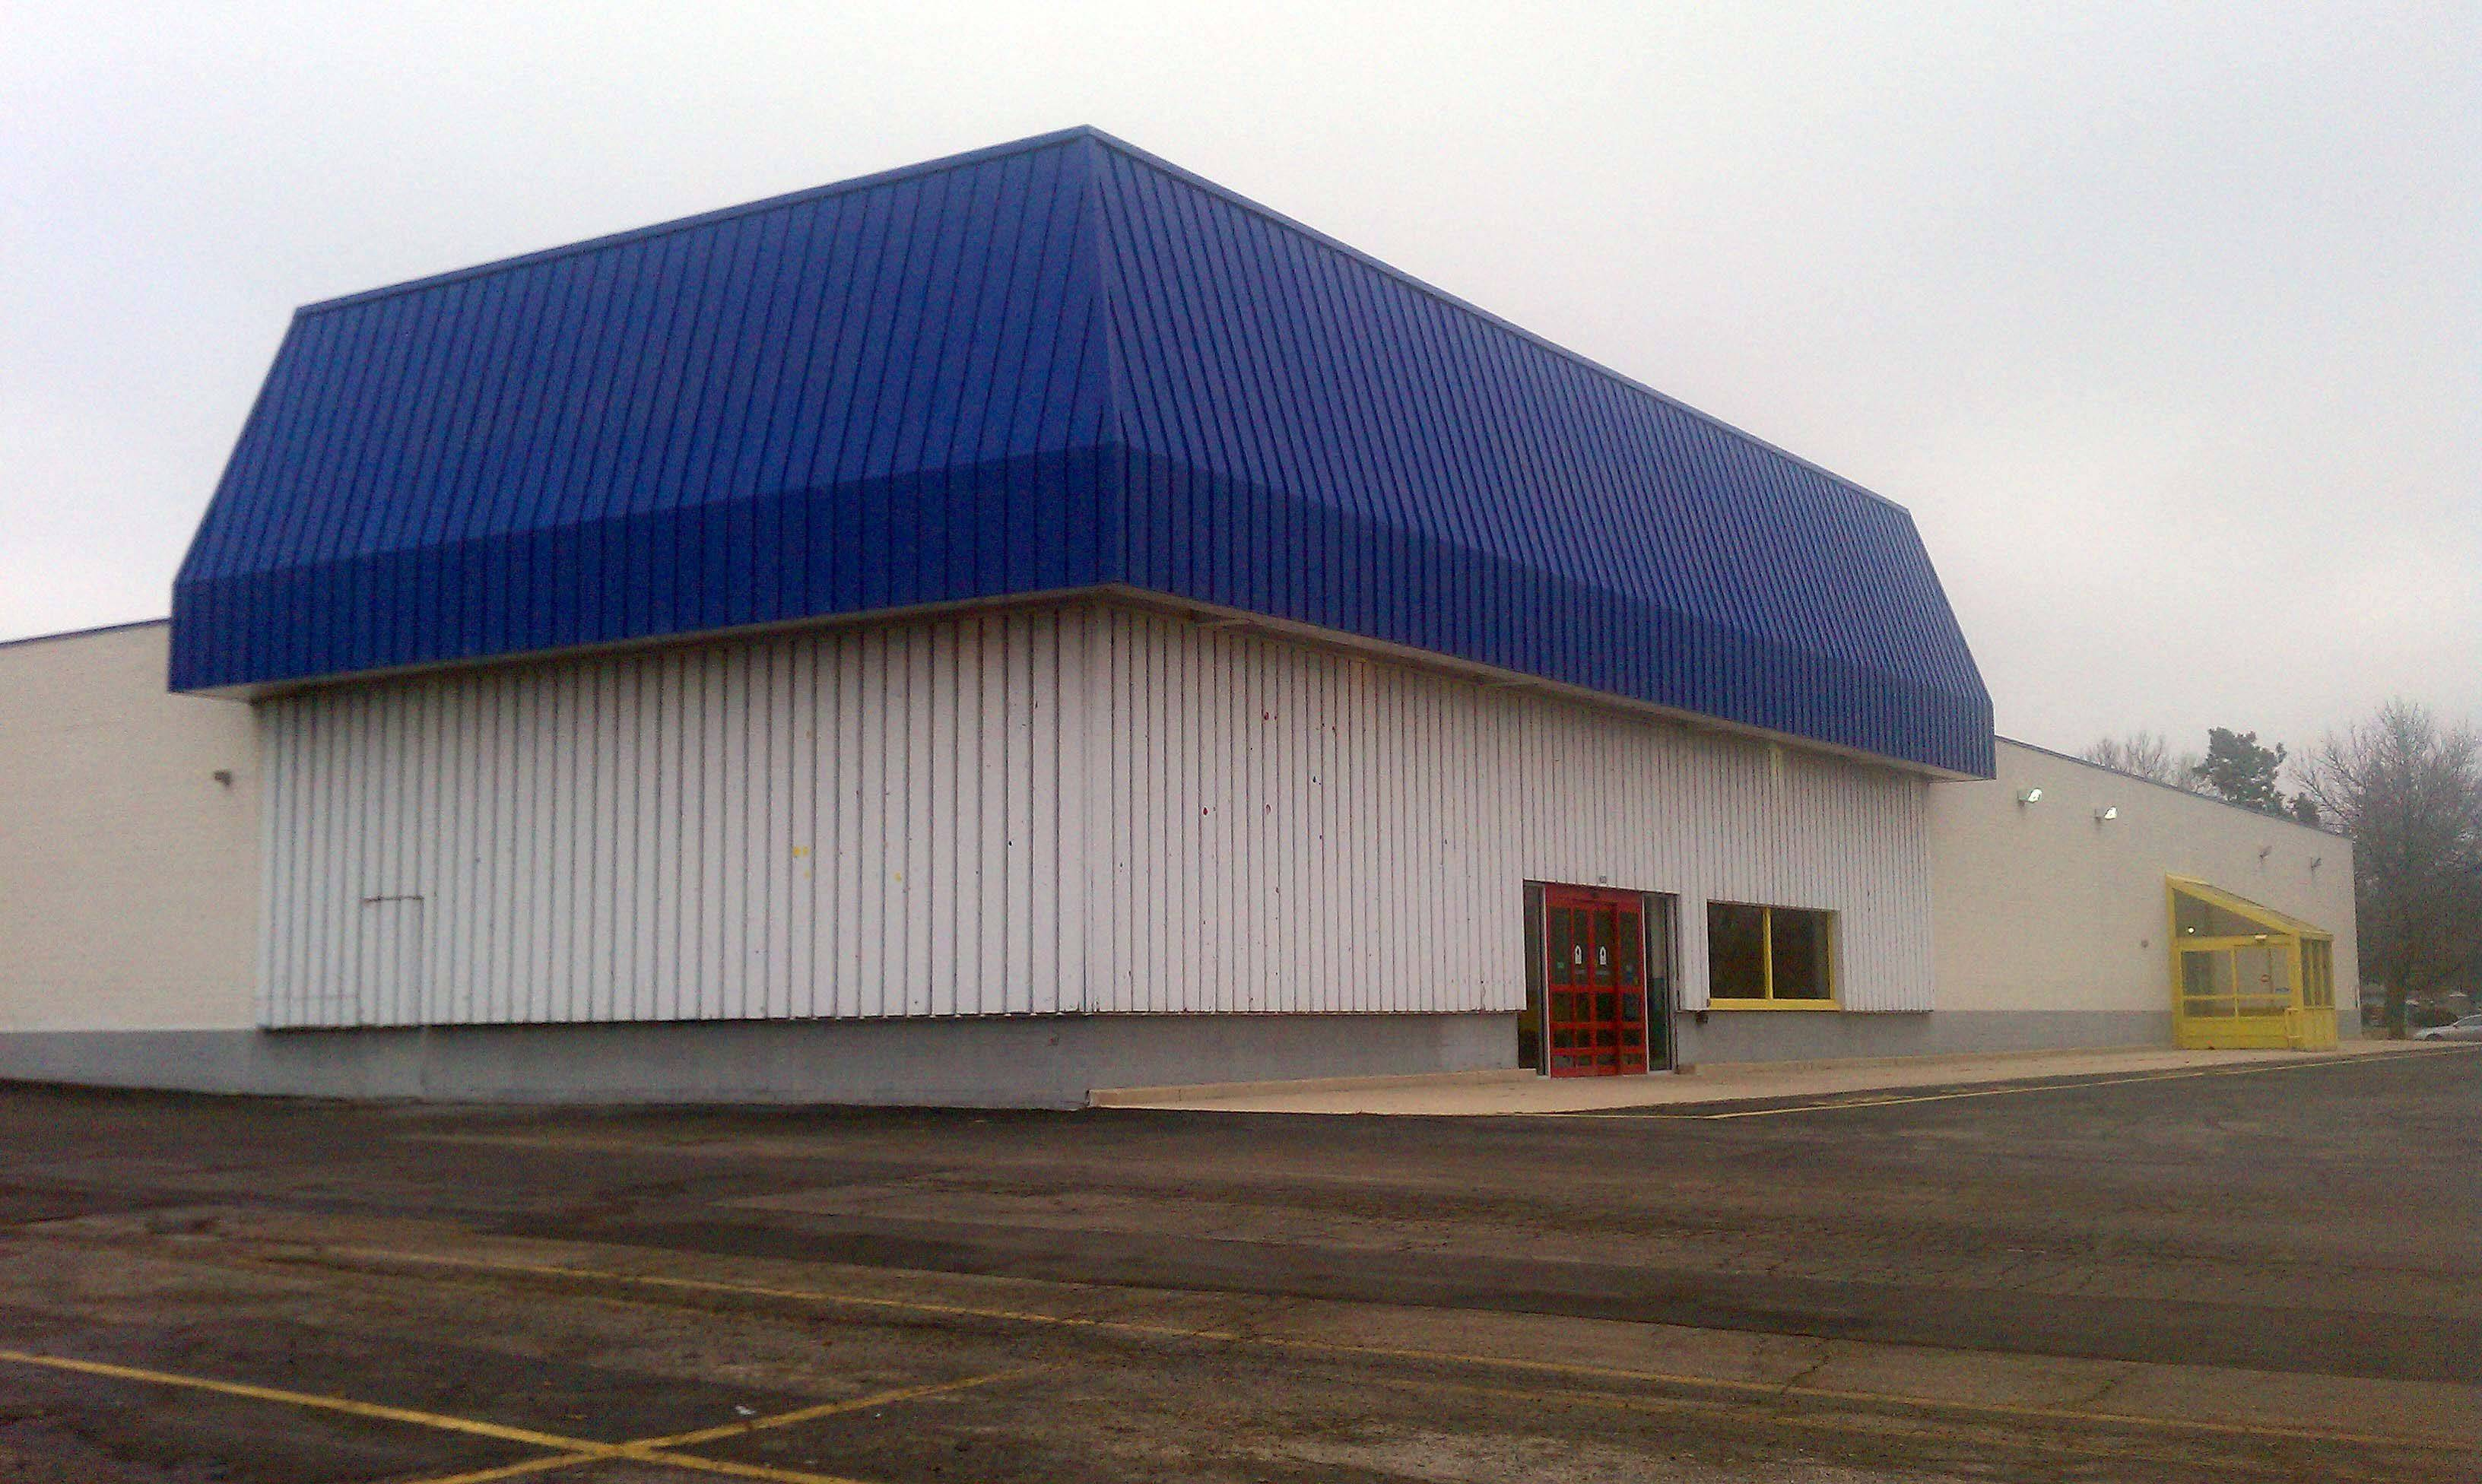 L.A. Fitness is going to start construction in April on a new gym in West Dundee that will be in the same spot as this building that housed a Toys R Us.